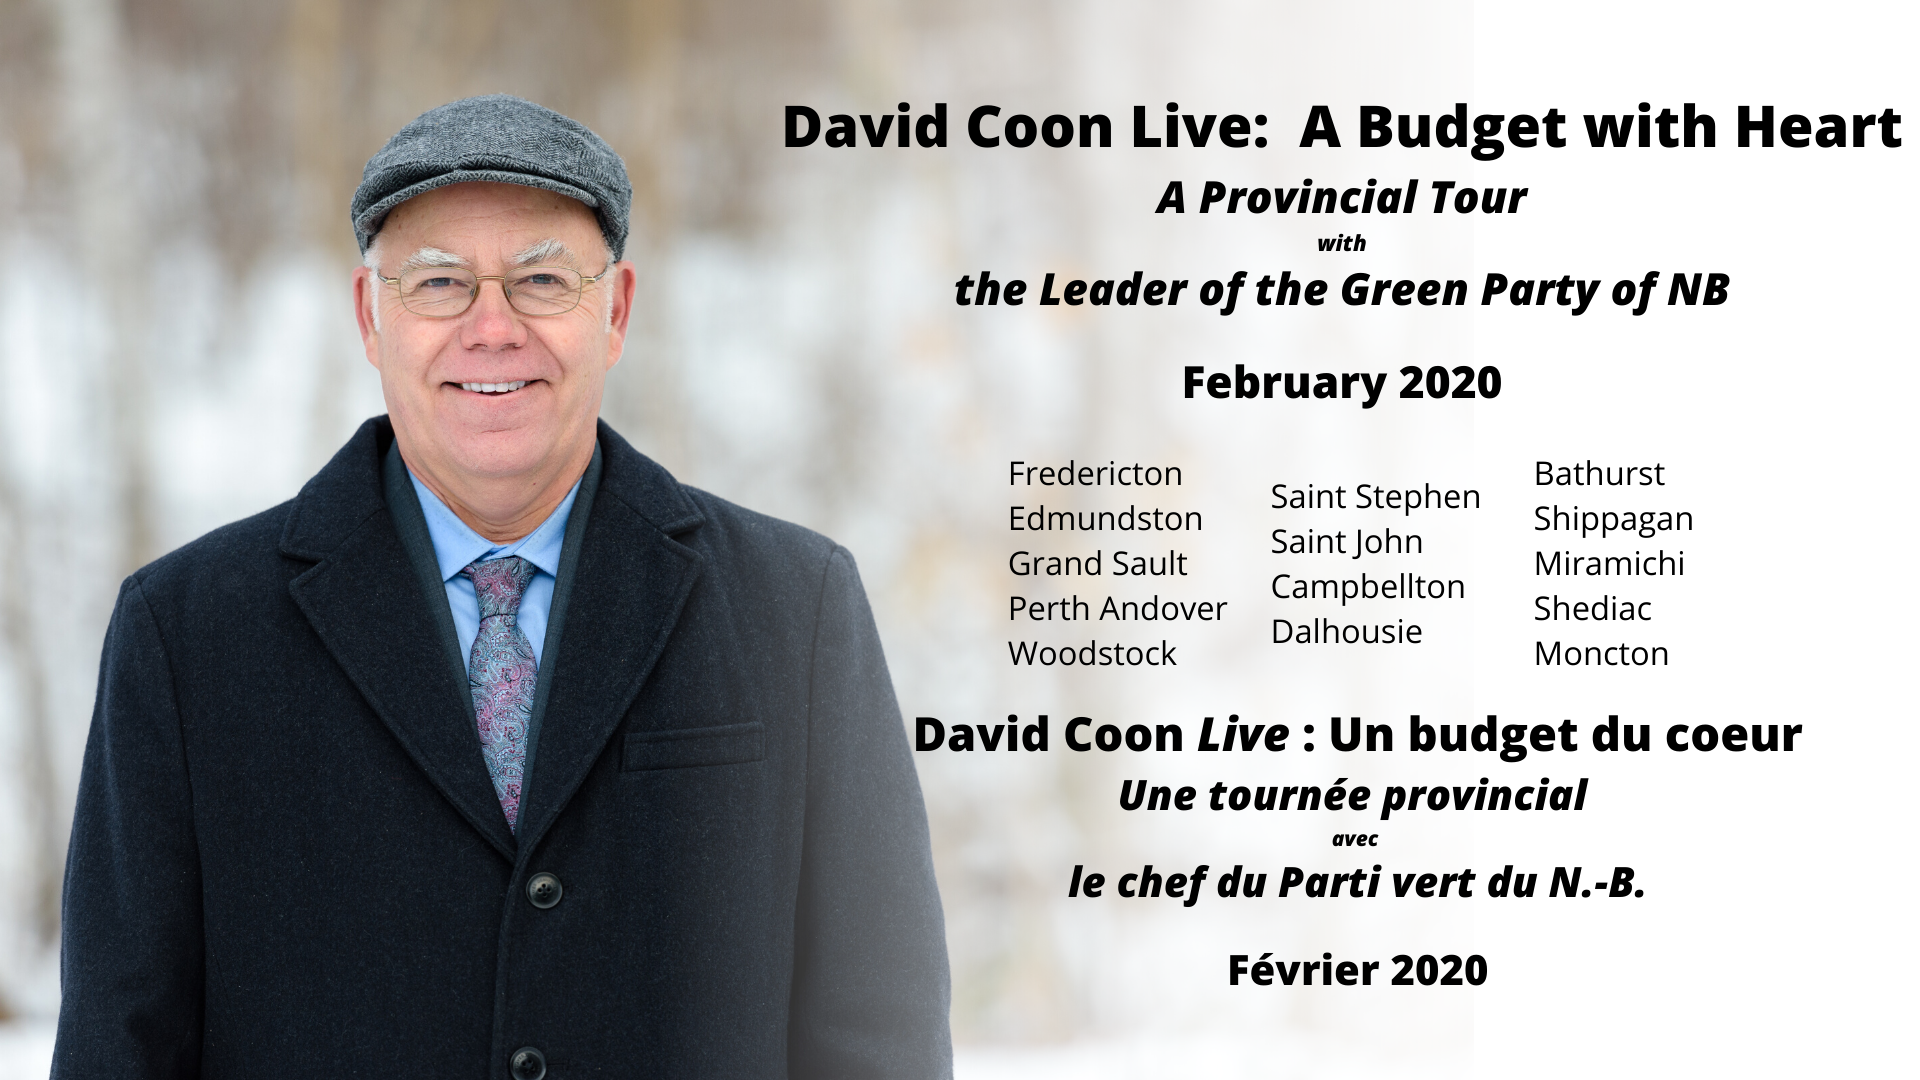 Green Party Leader launches provincial Budget with Heart Tour